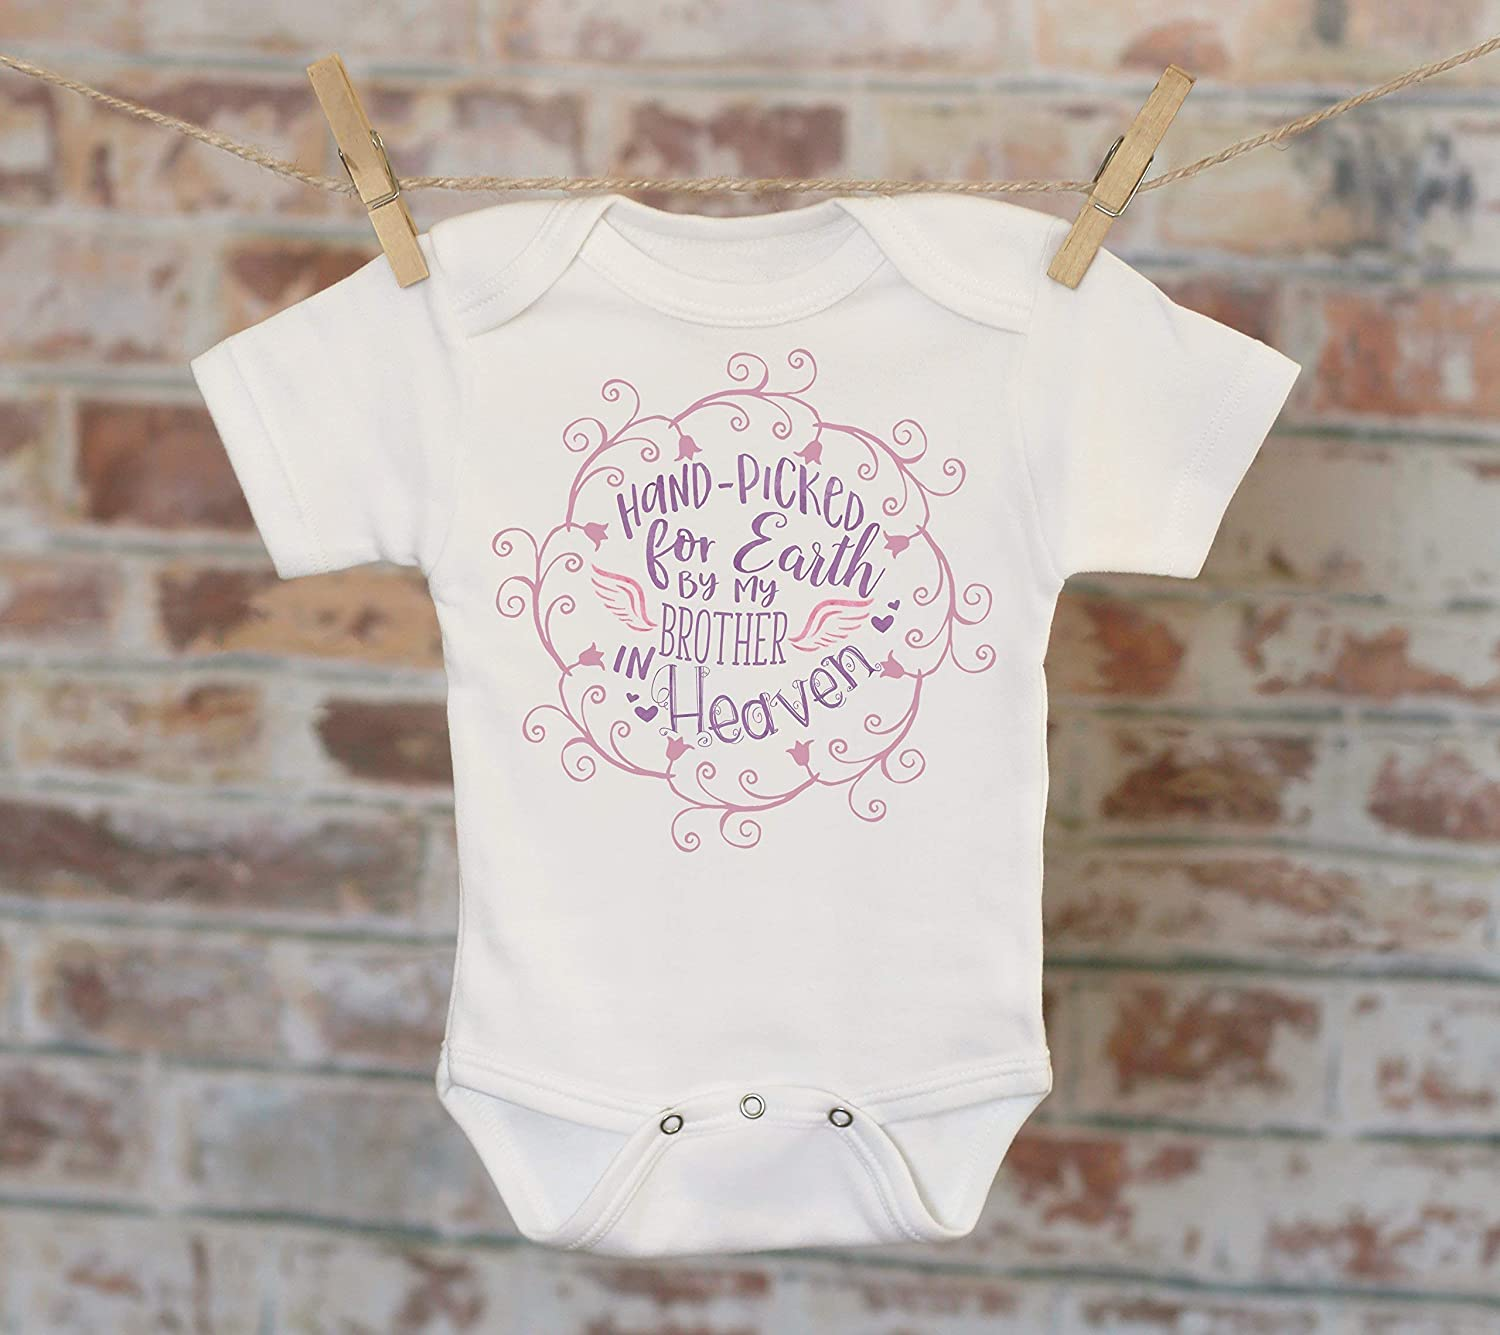 Handpicked for Earth By My Brother In Heaven Onesie® in Purple, Sentimental Onesie, Rainbow Baby Onesie, Rainbow Sister